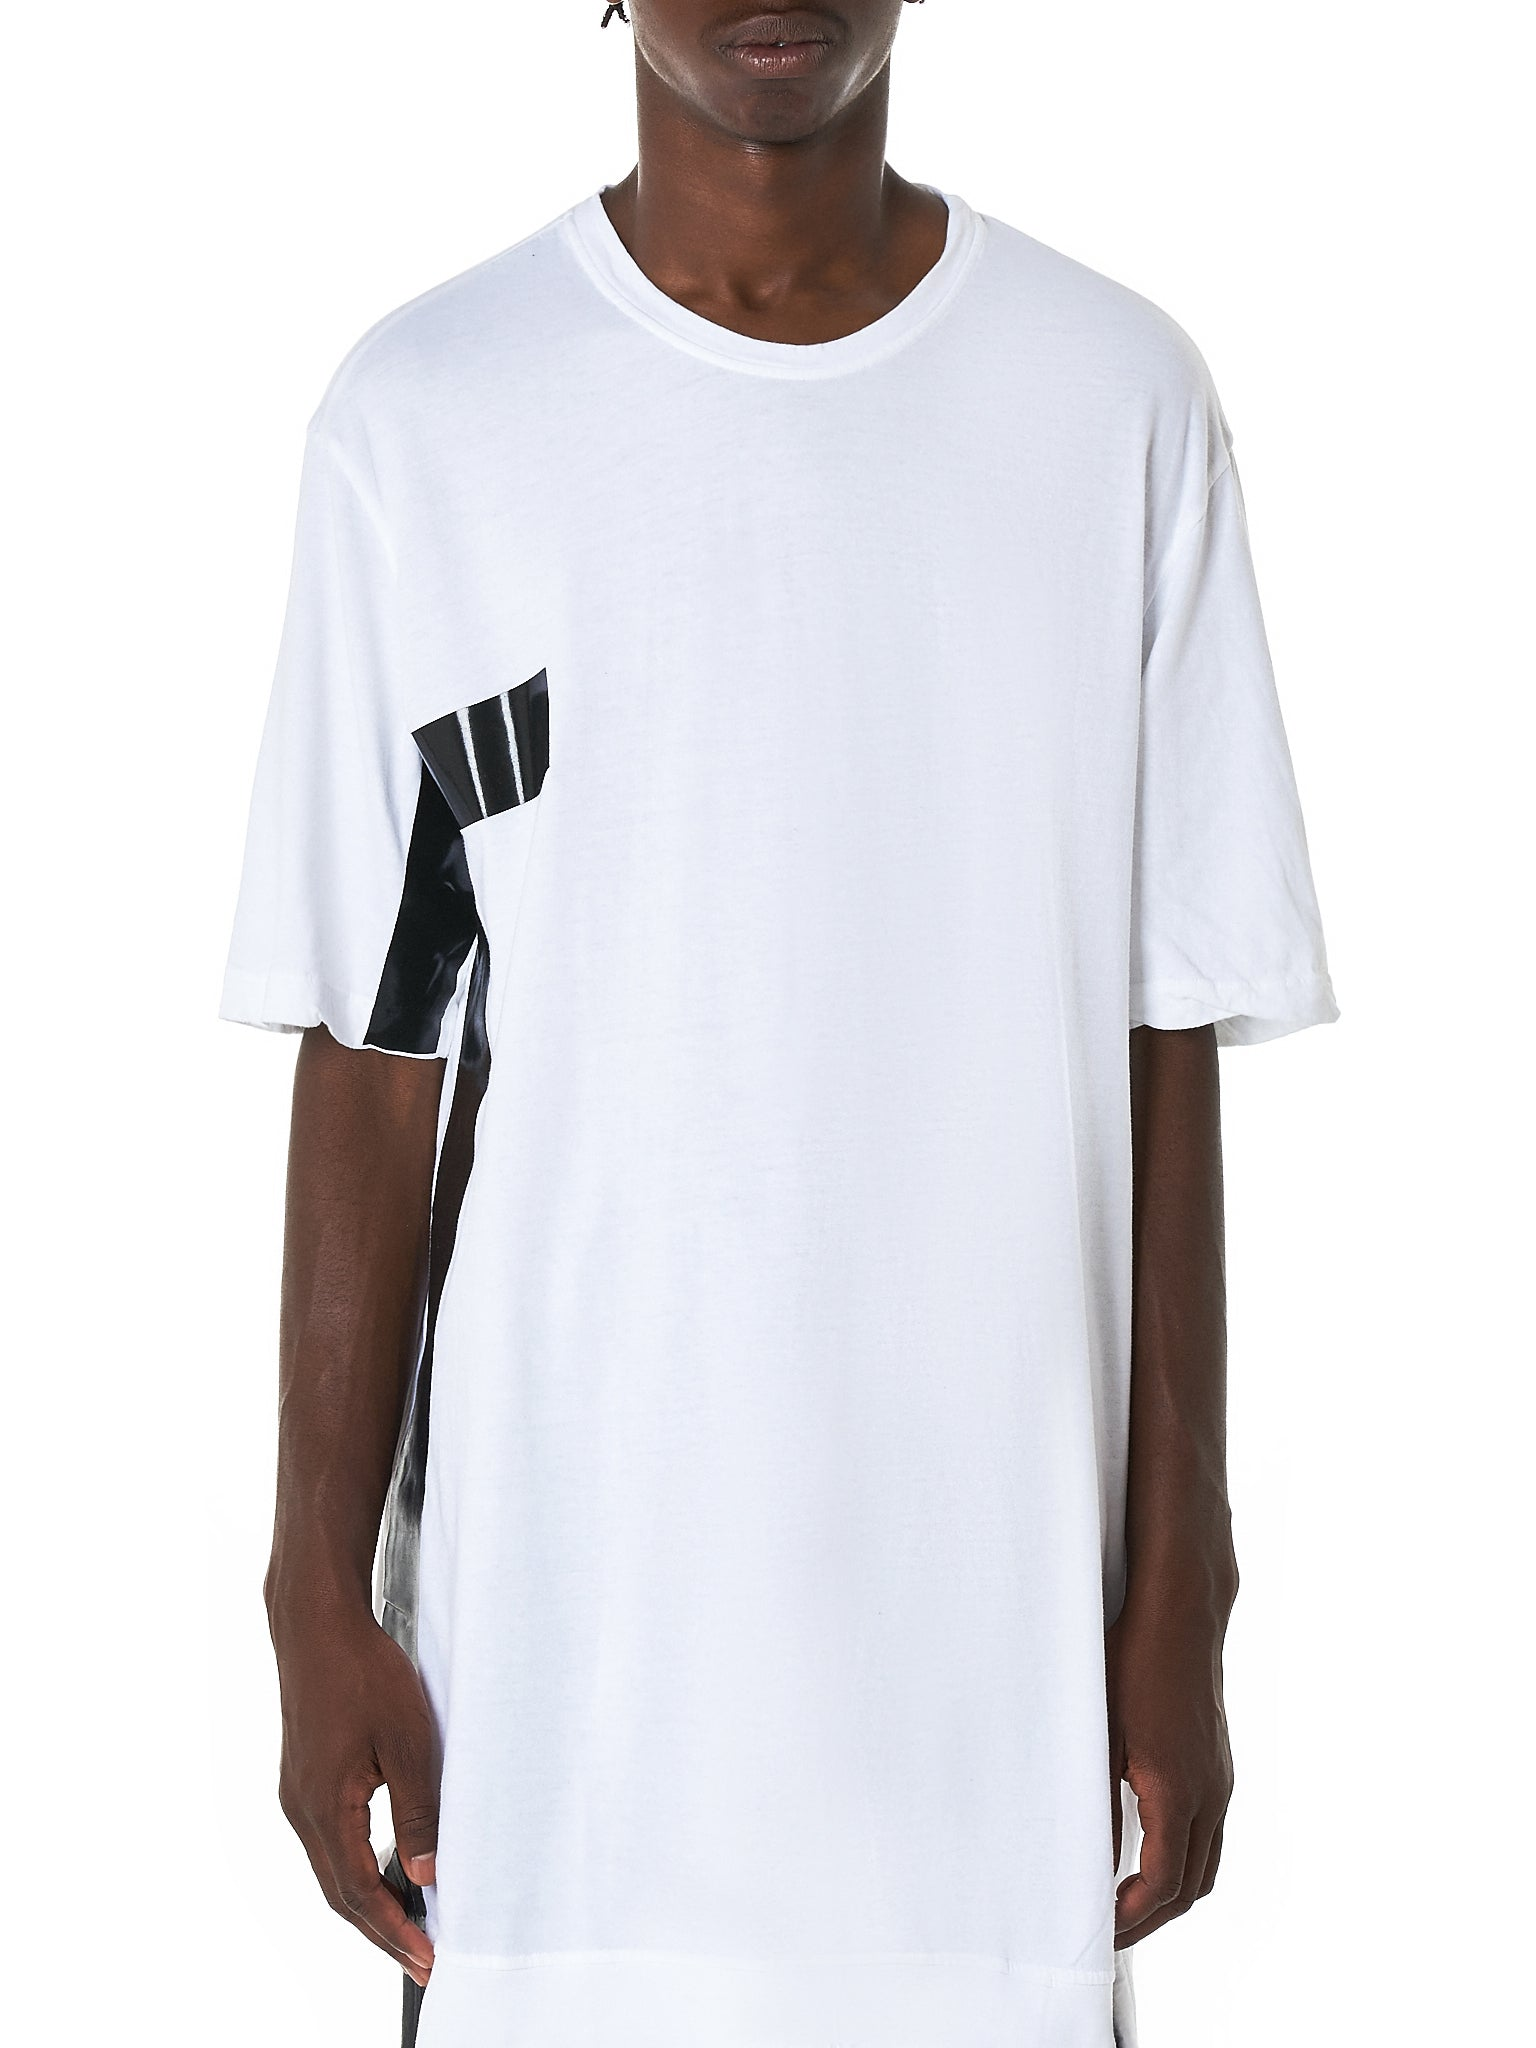 Lost & Found Rooms Tee Shirt - Hlorenzo Front